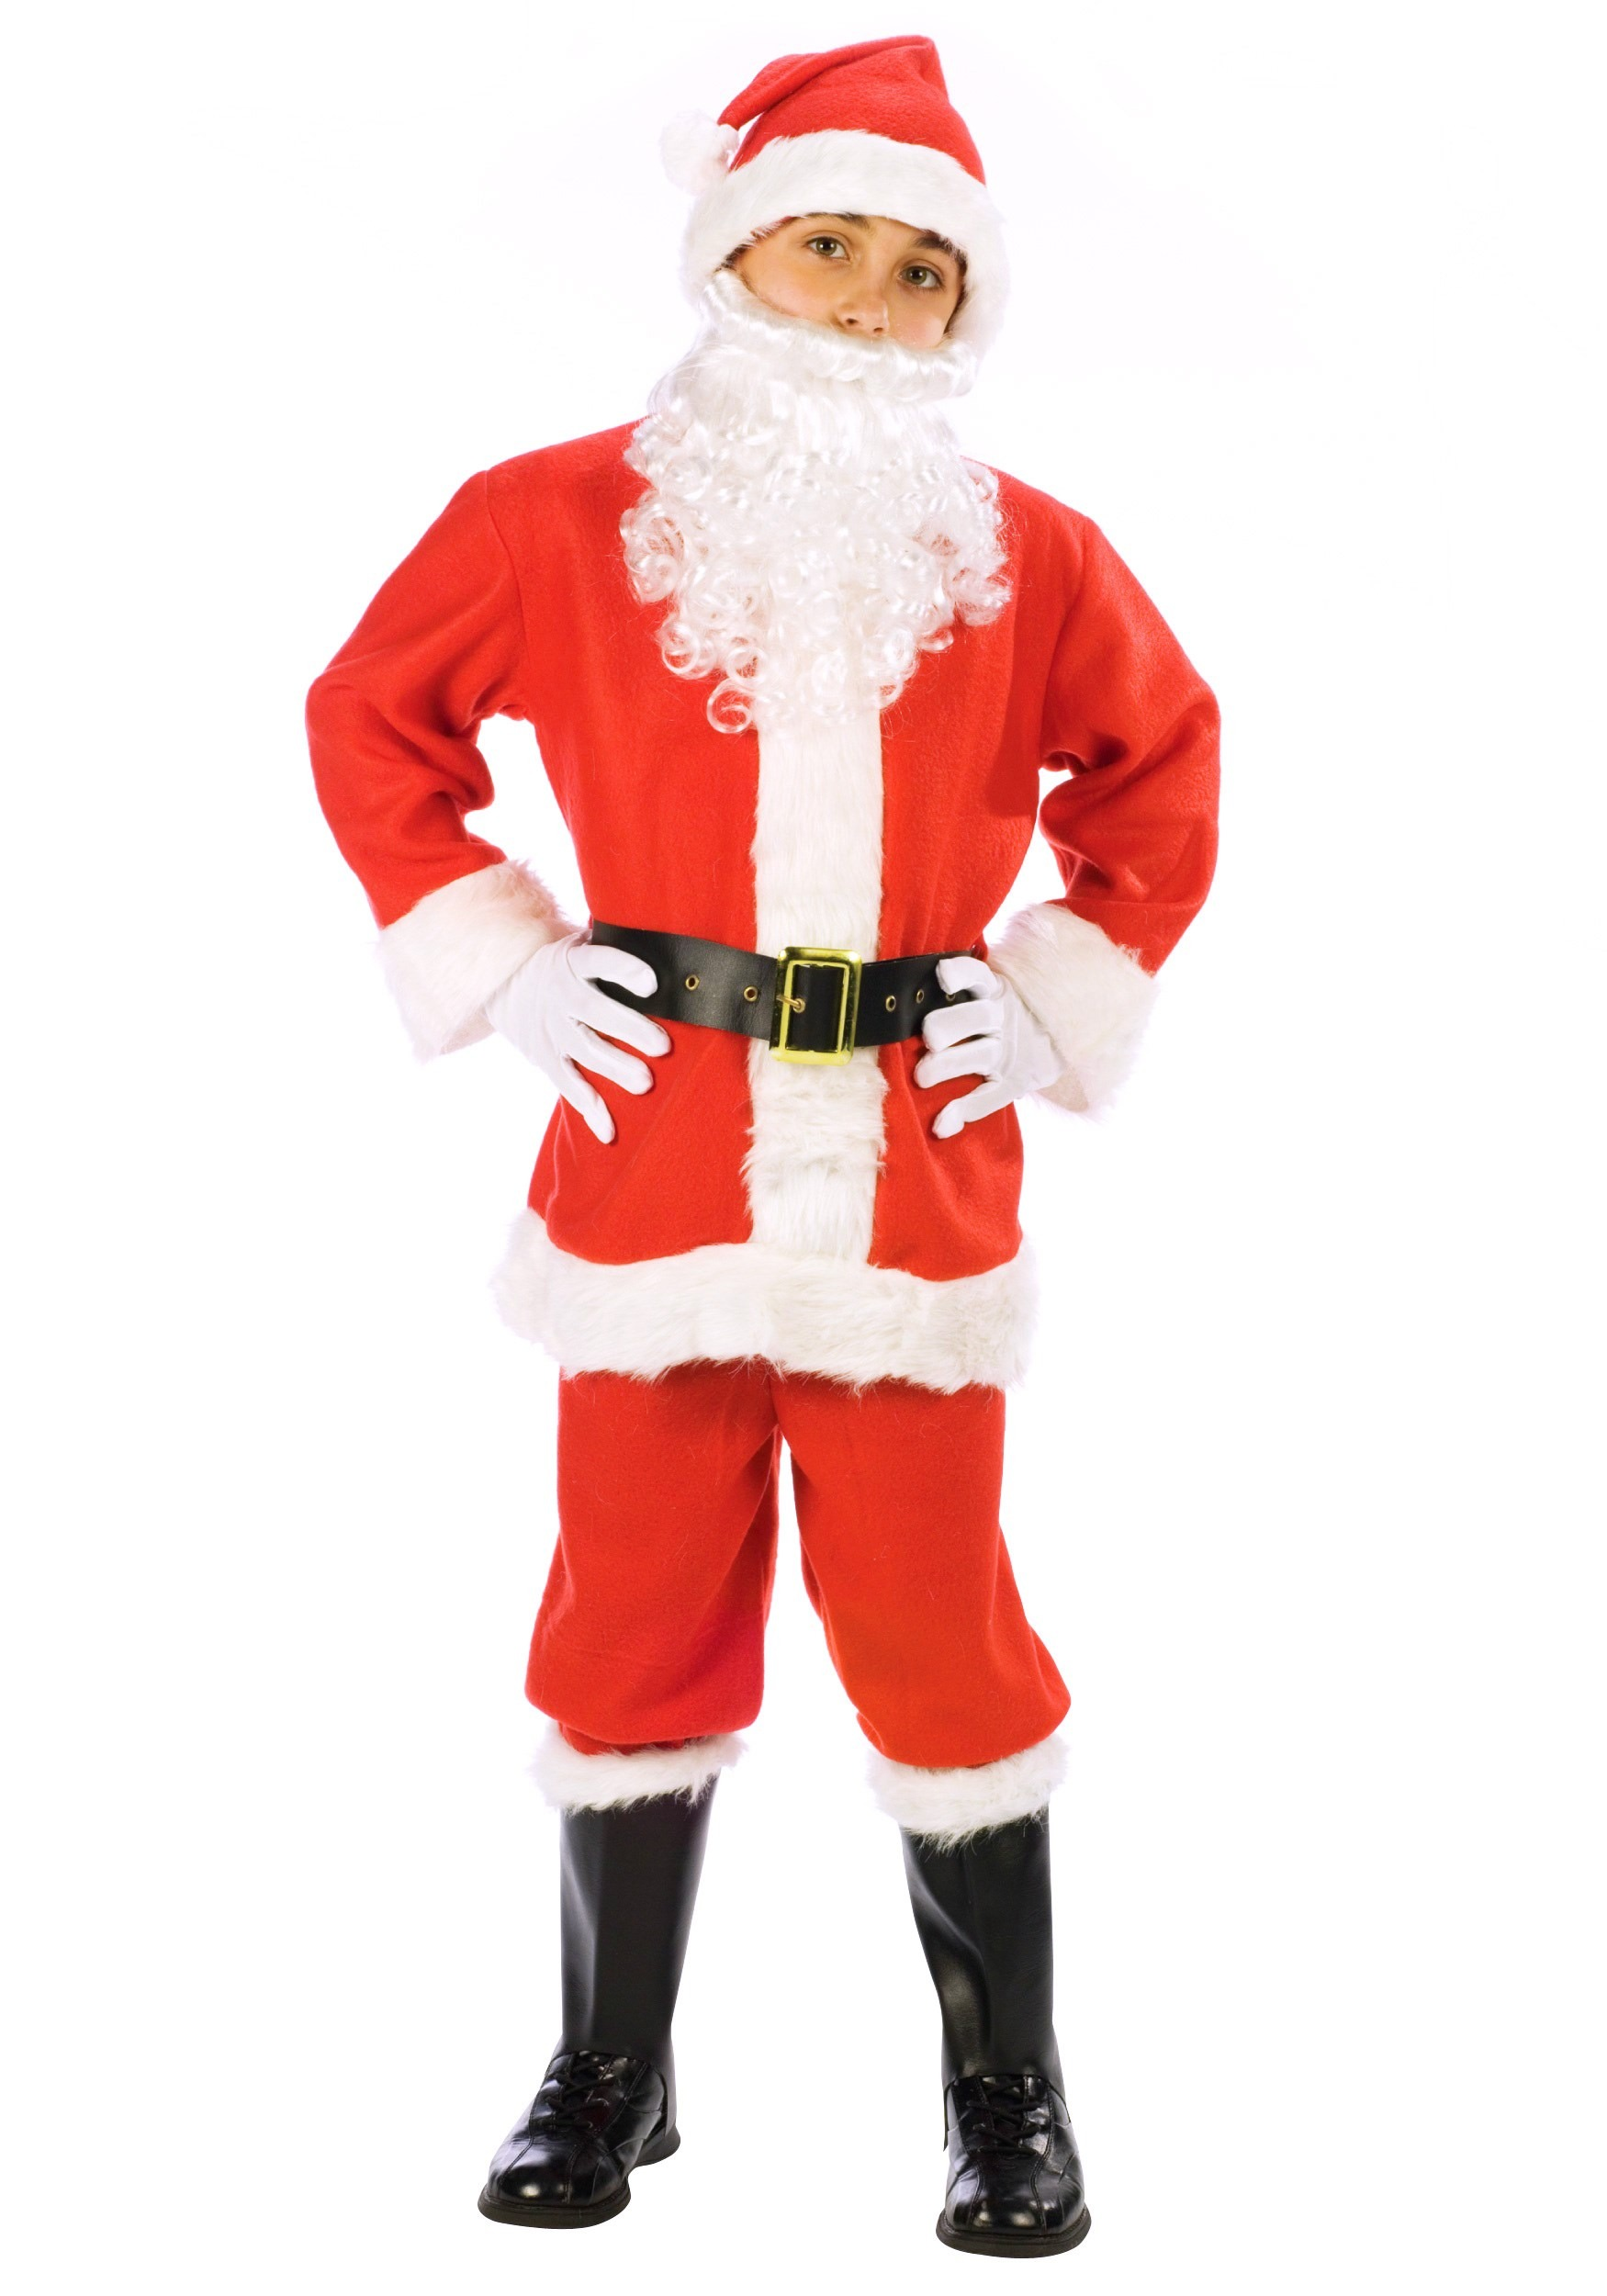 Shop for Santa Claus Suit clothing & apparel on Zazzle. Check out our t-shirts, polo shirts, hoodies, & more great items.